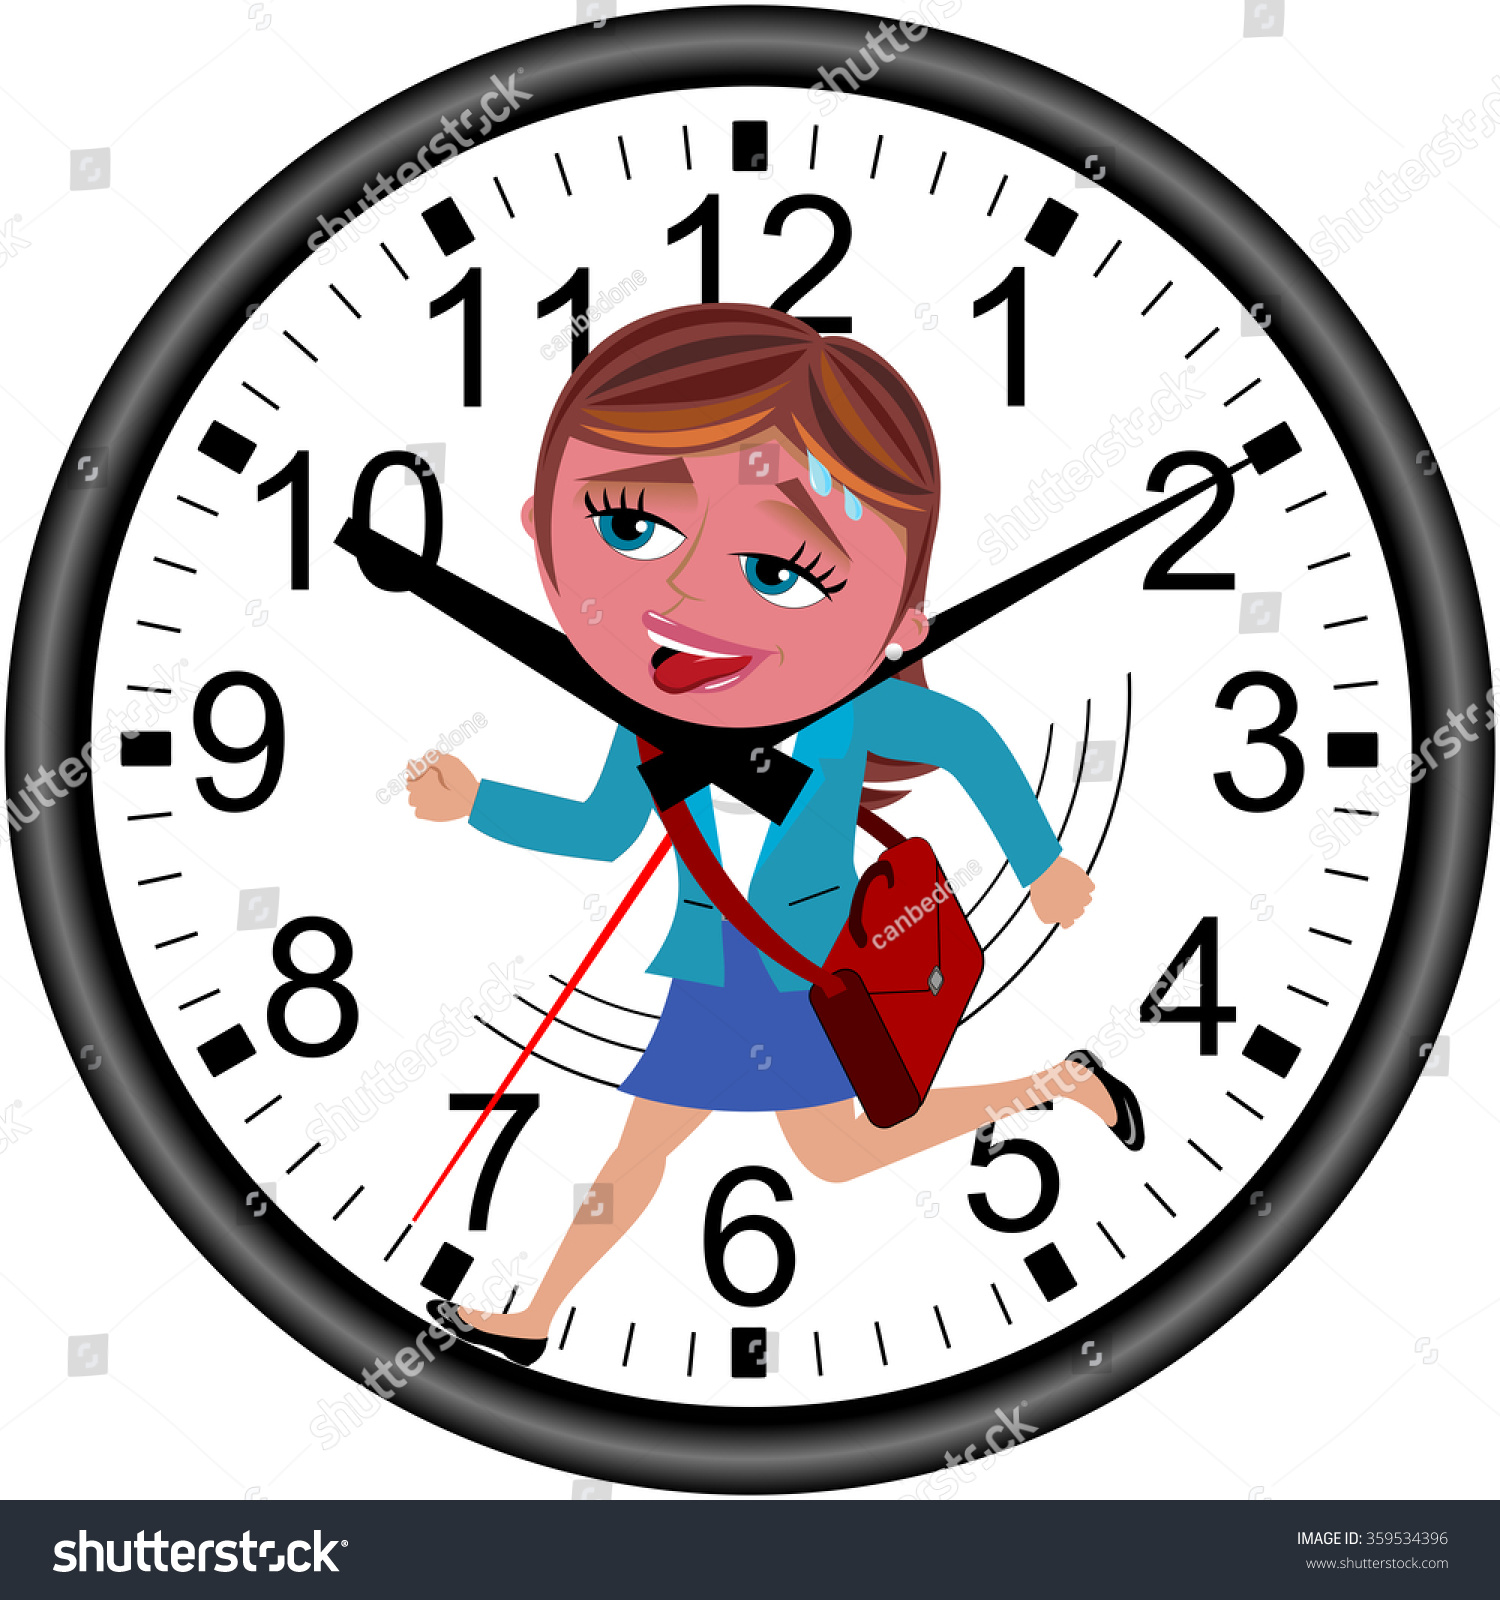 Red faced businesswoman running against time stock vector red faced businesswoman running against time in a wall clock getting strangled by clock hands isolated amipublicfo Image collections